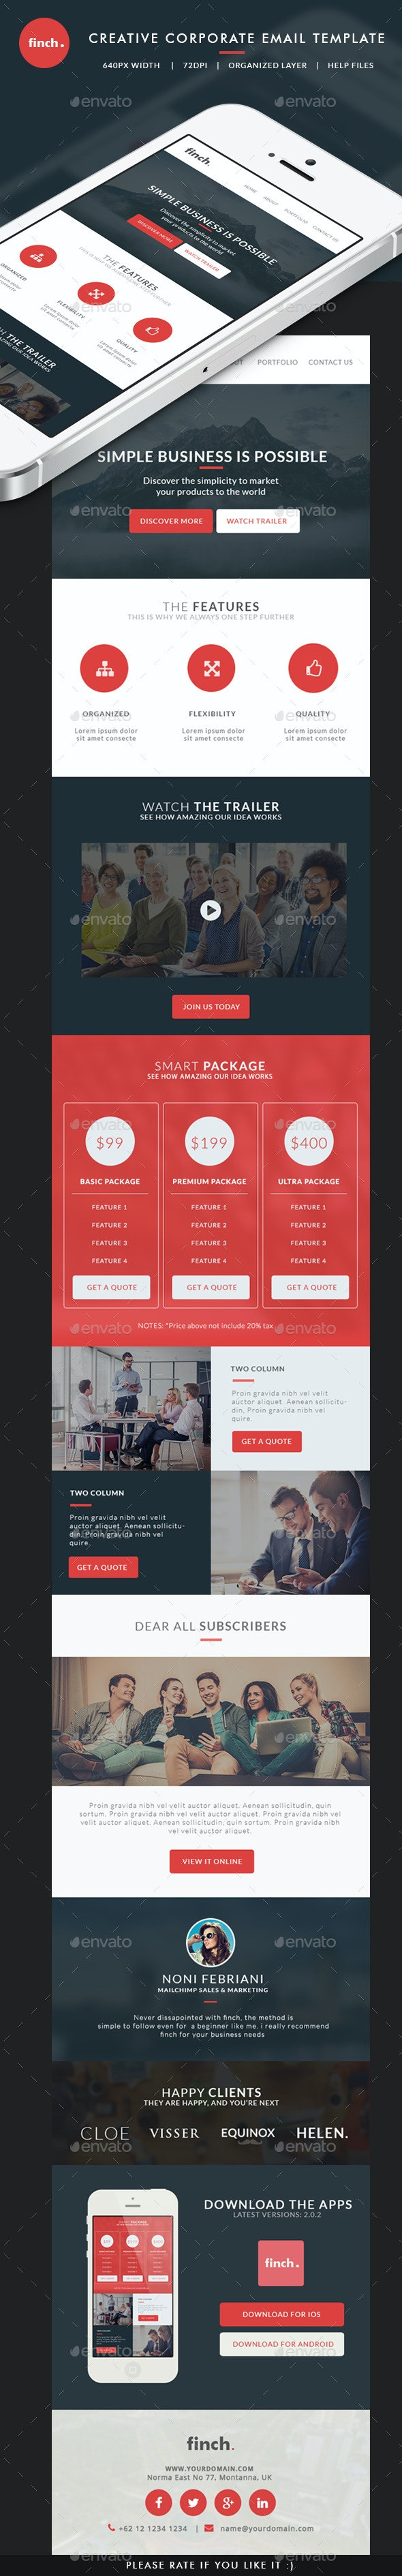 Corporate Email Template - finch